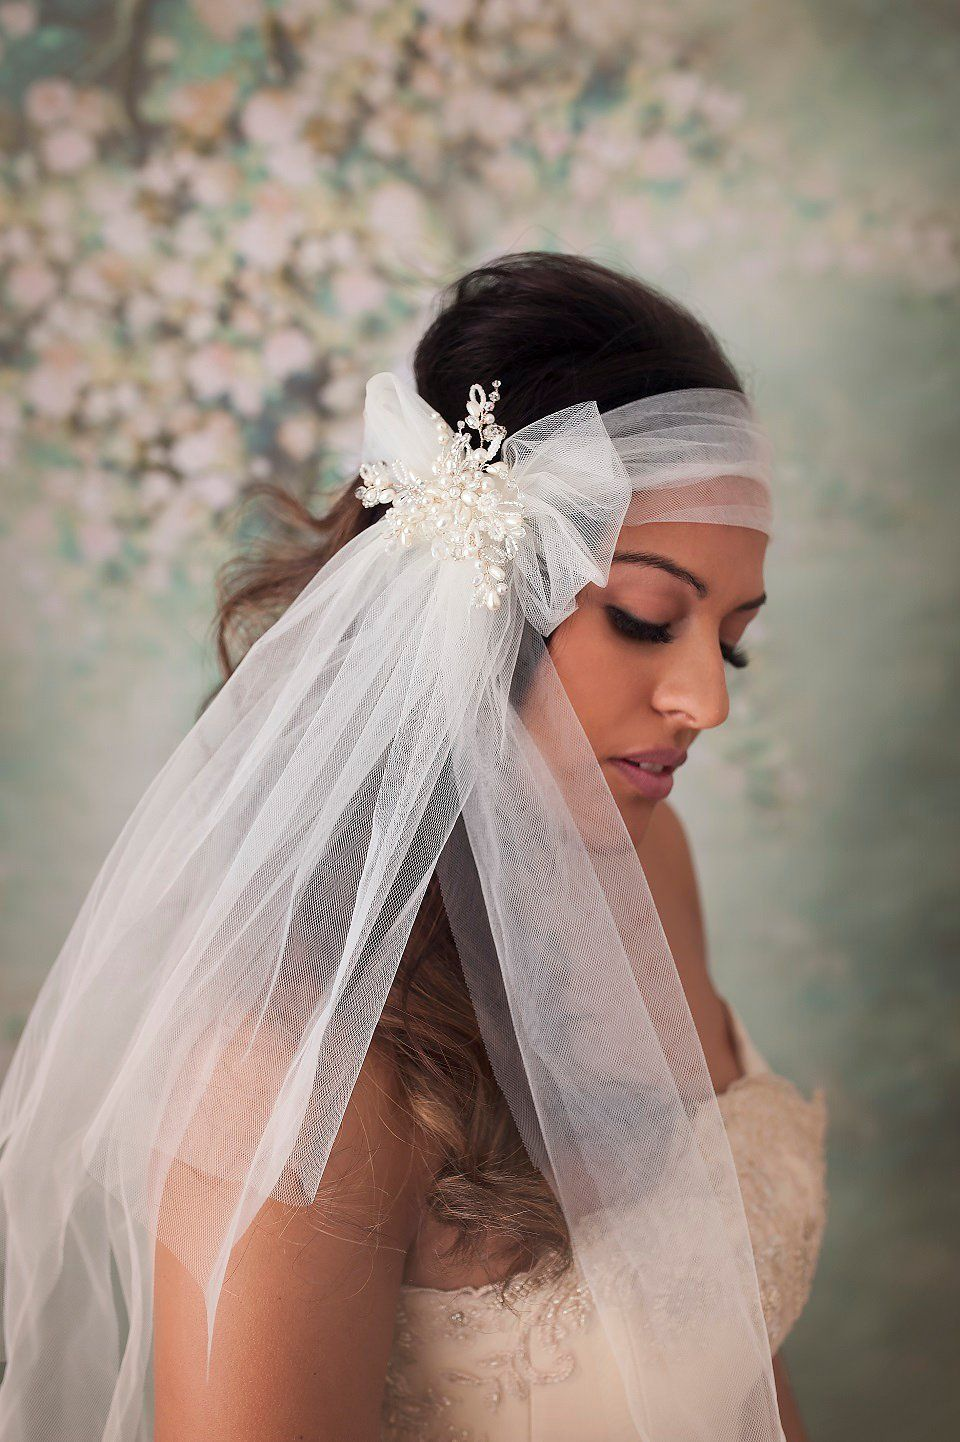 Mimosa Couture Bridal Accessories - Modern, Versatile & Romantic Wedding Headpieces